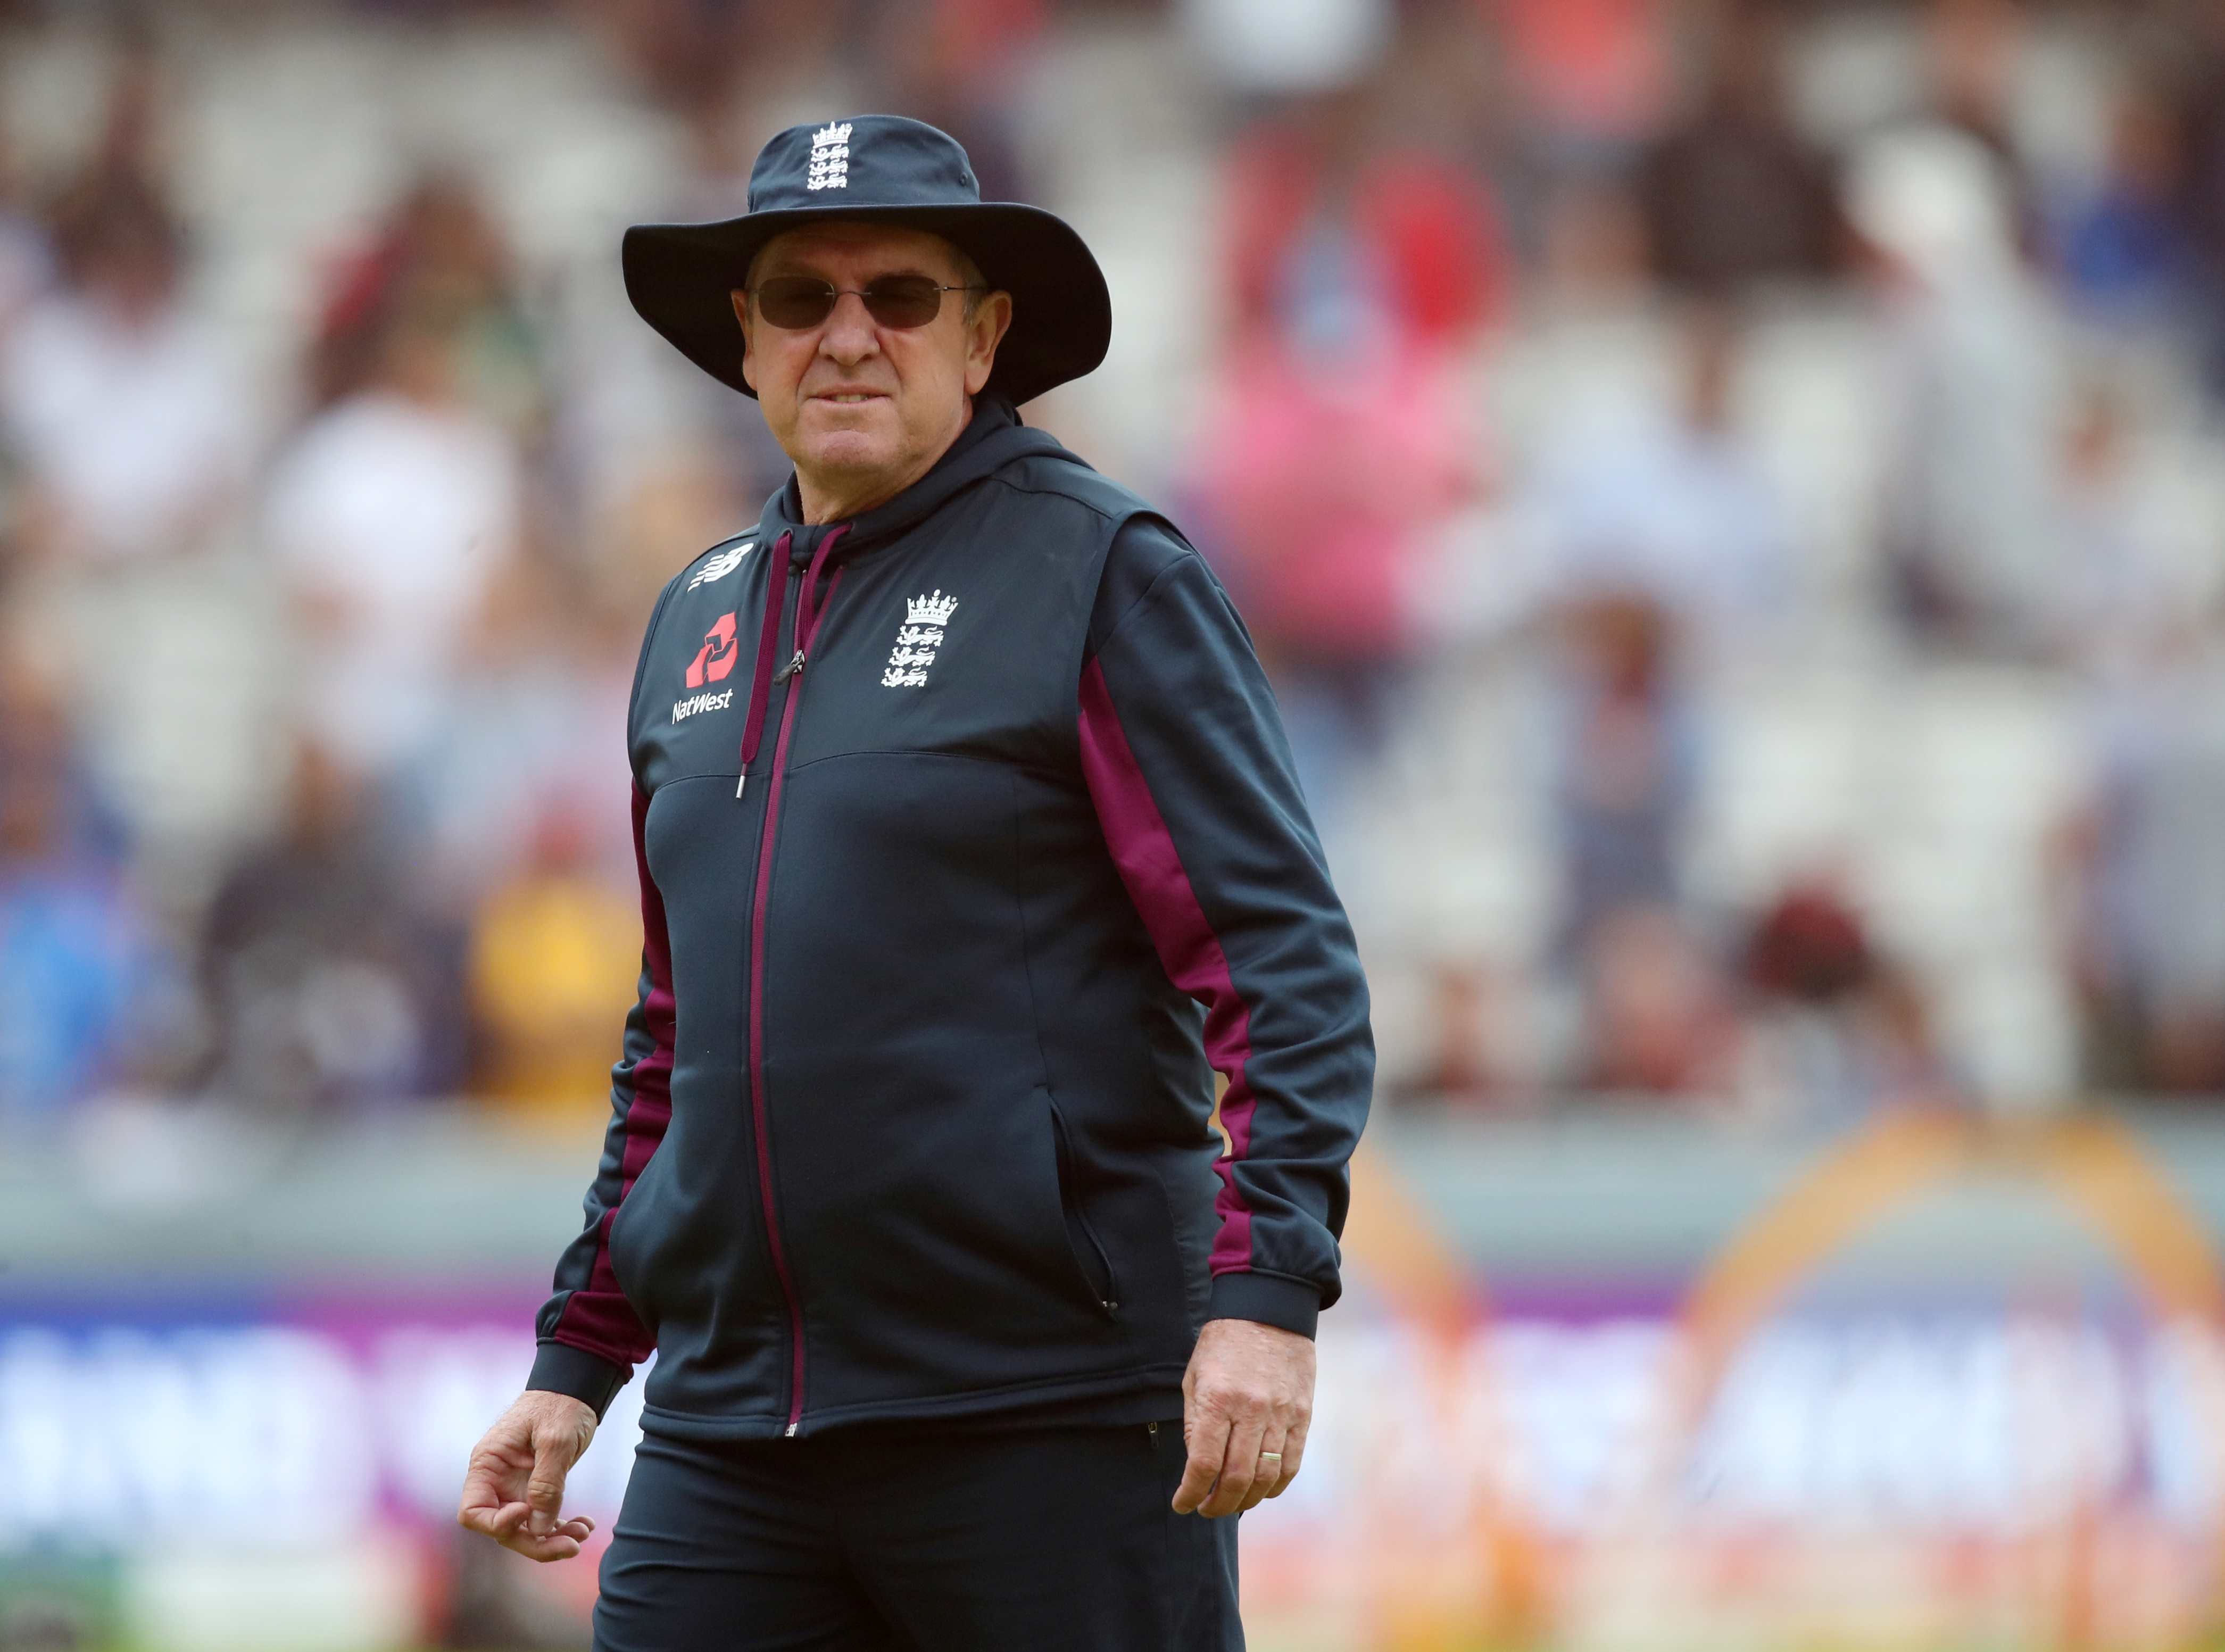 World Cup-winner Bayliss to coach IPL's Sunrisers Hyderabad after